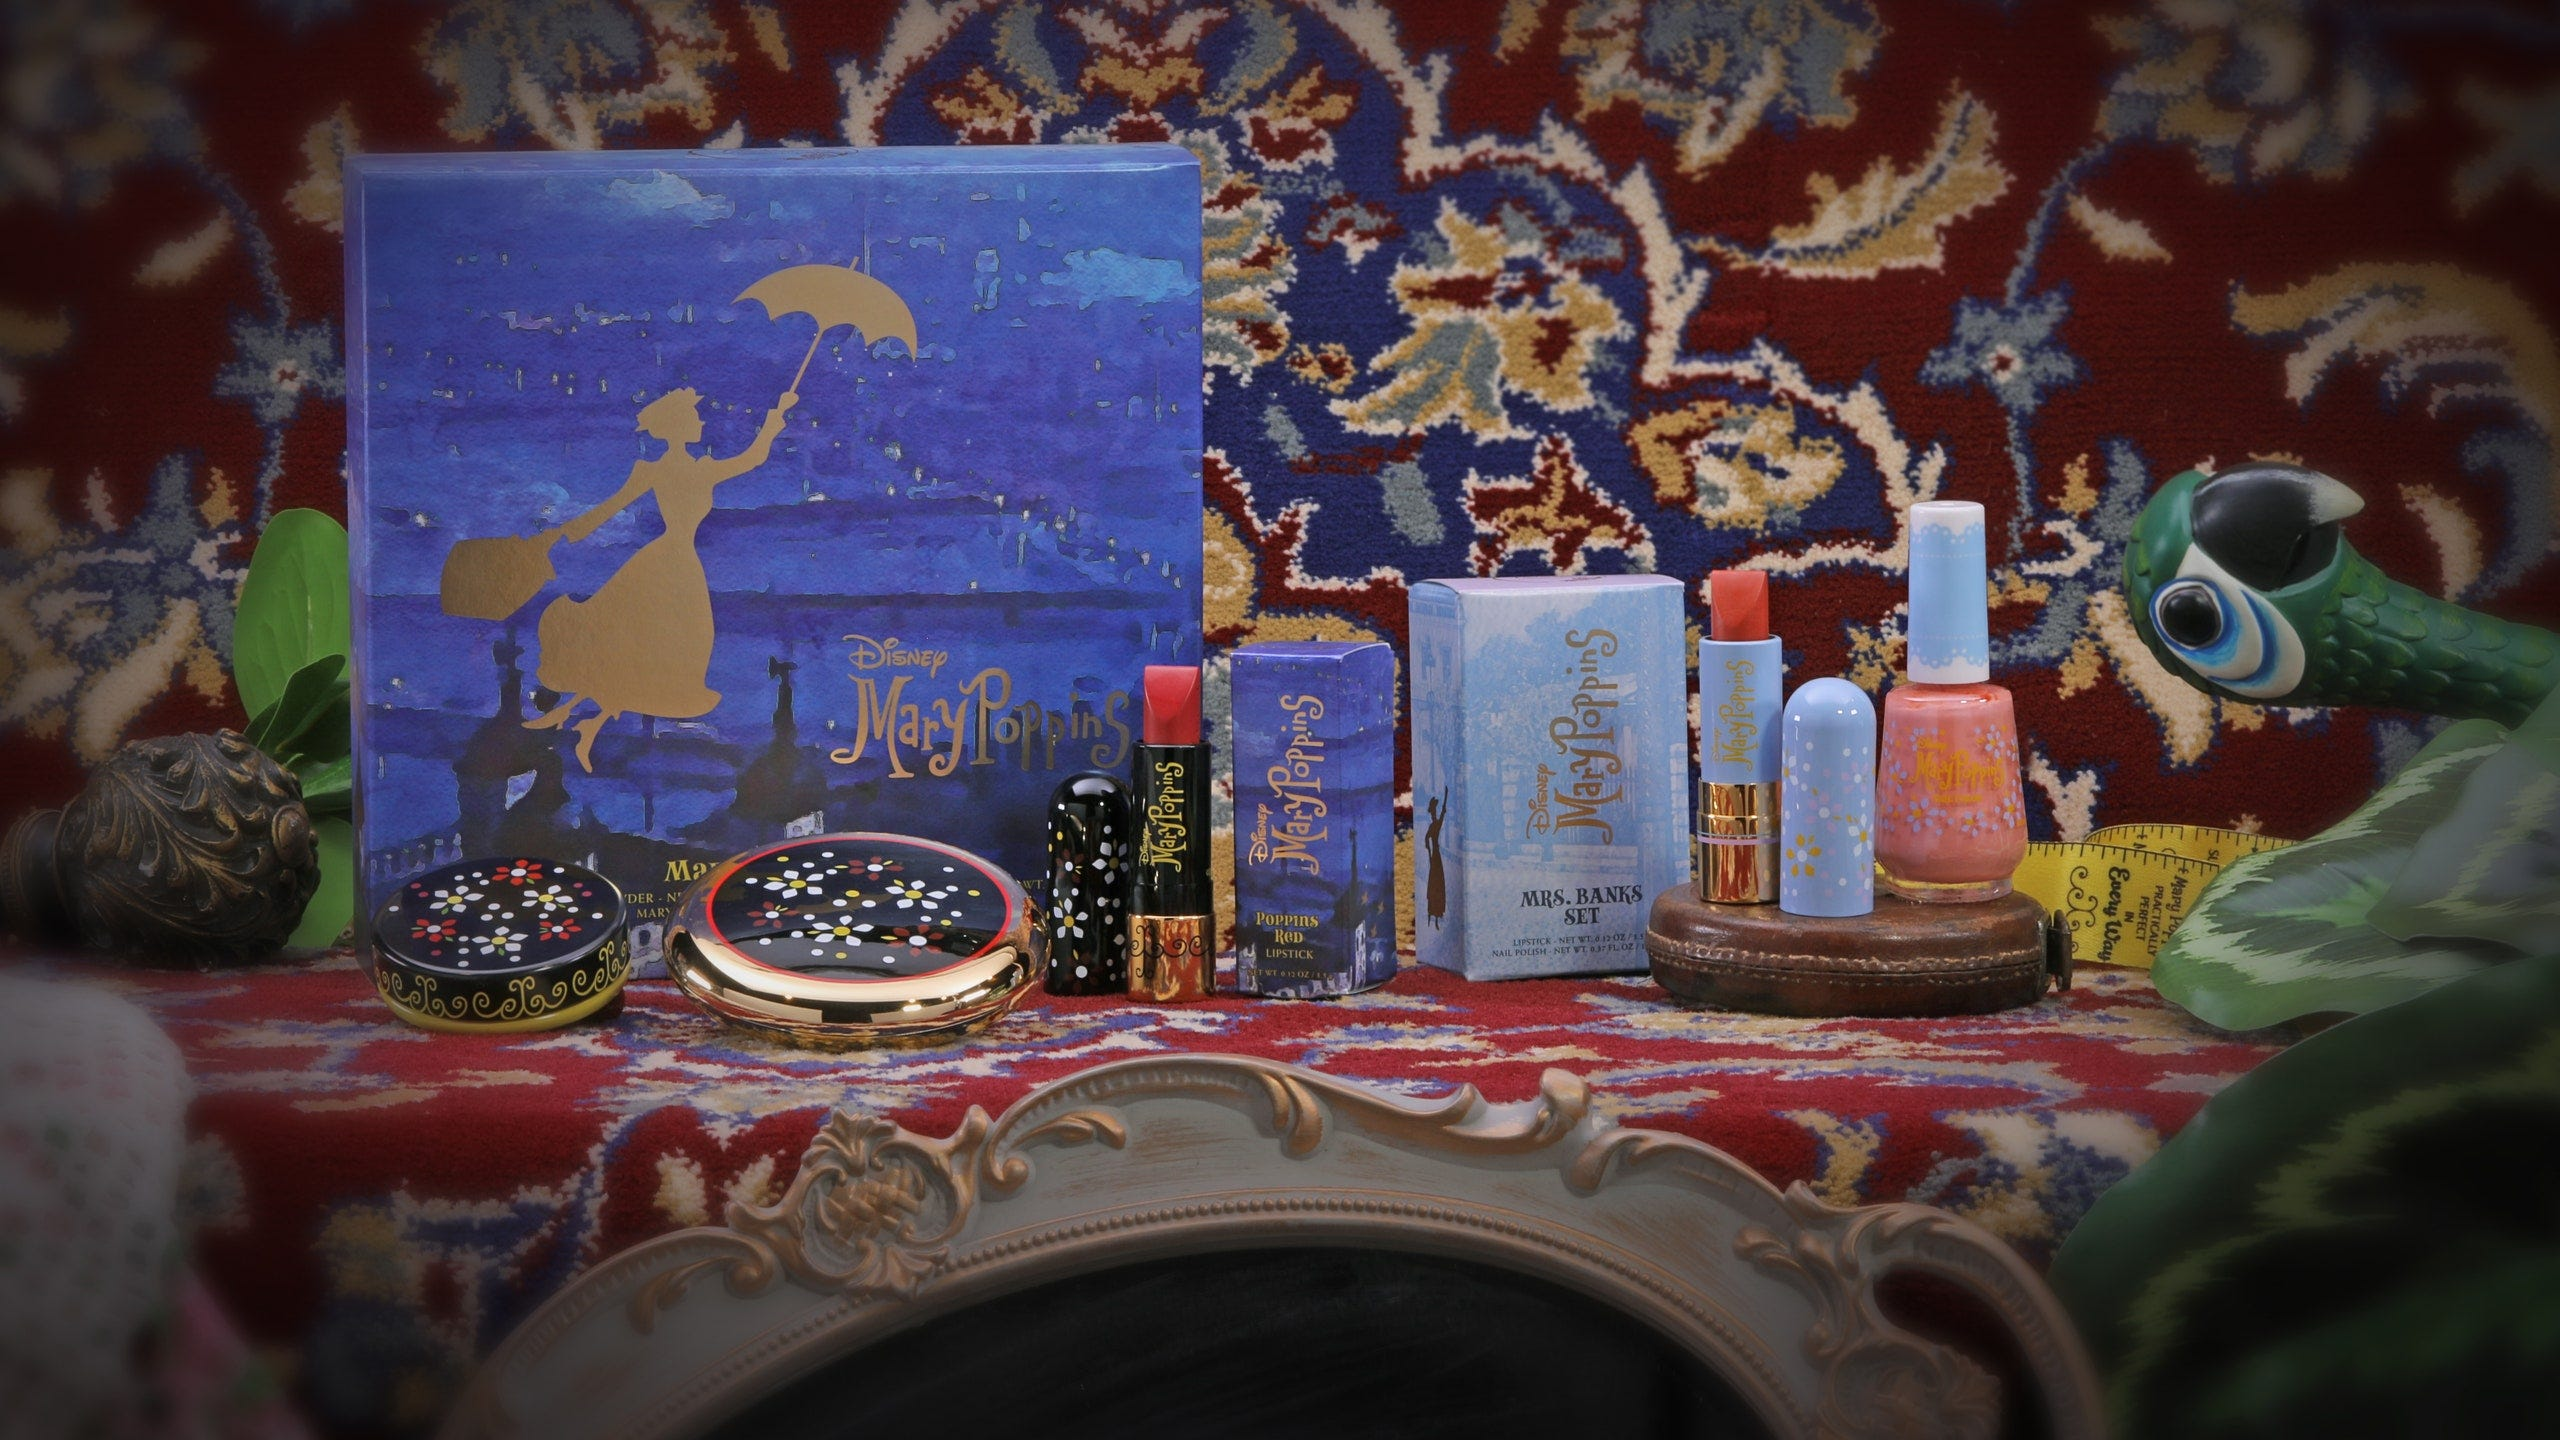 A kit of makeup with compacts and lipsticks against a Mary Poppins artwork